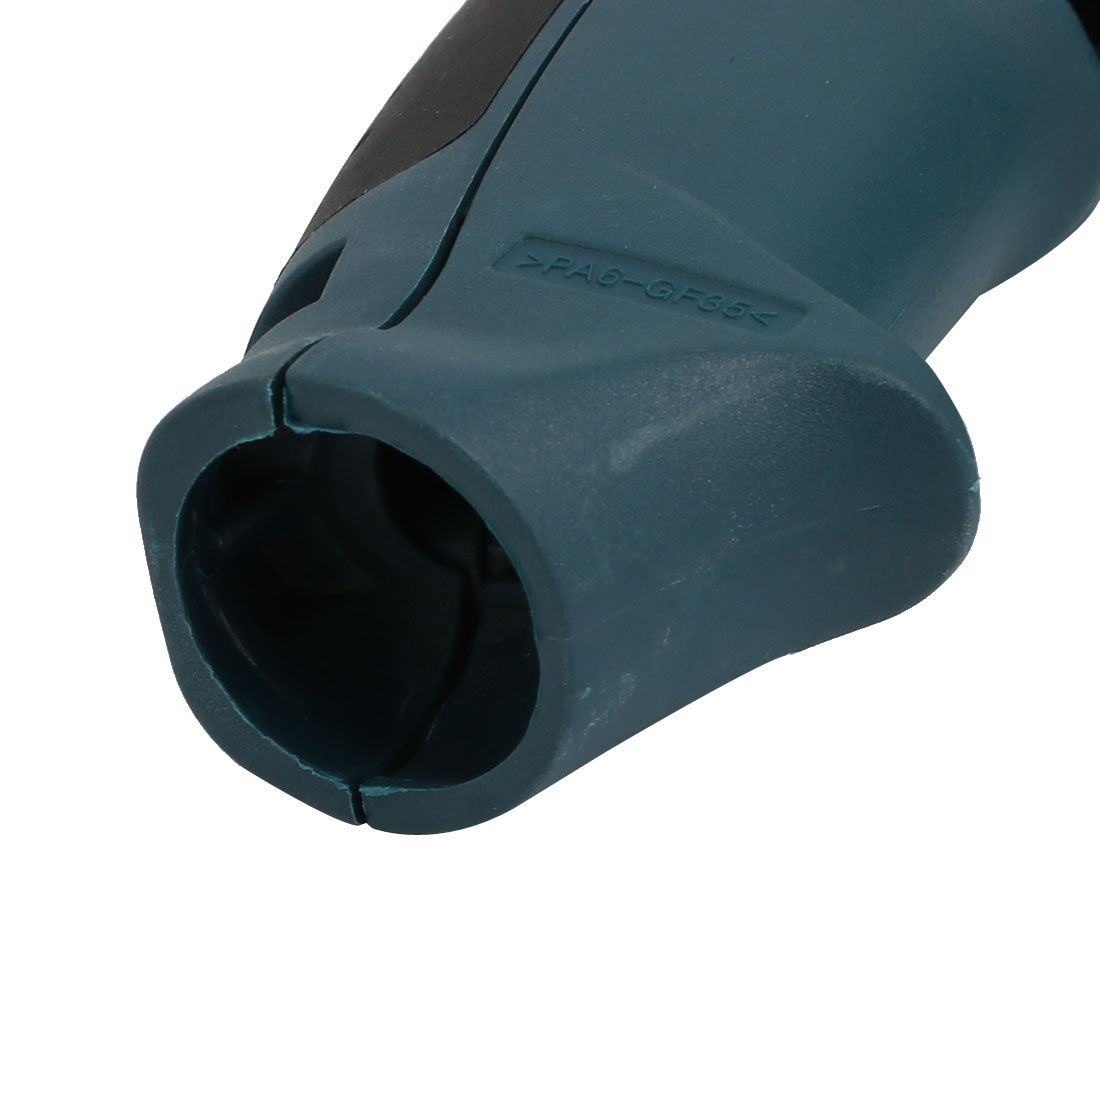 Power Tool Fittings Electric Hammer Shell Casing for Bosch GBH2-26D/DE/DRE - image 2 of 4